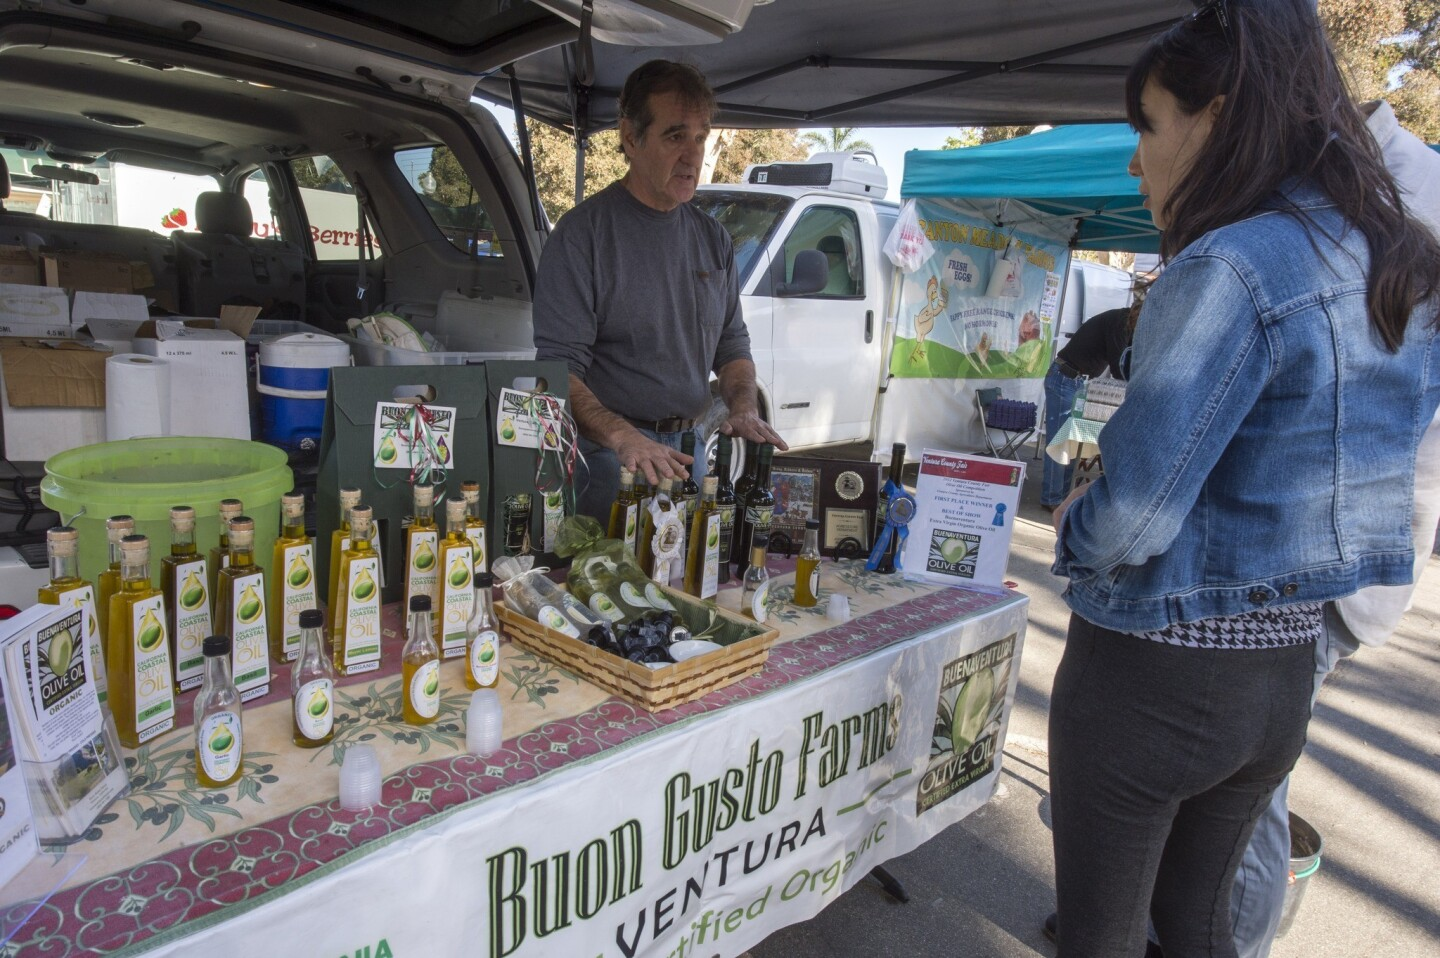 Mark Mooring of Buon Gusto Farms sells olive oil pressed from olives he grows in Ventura.